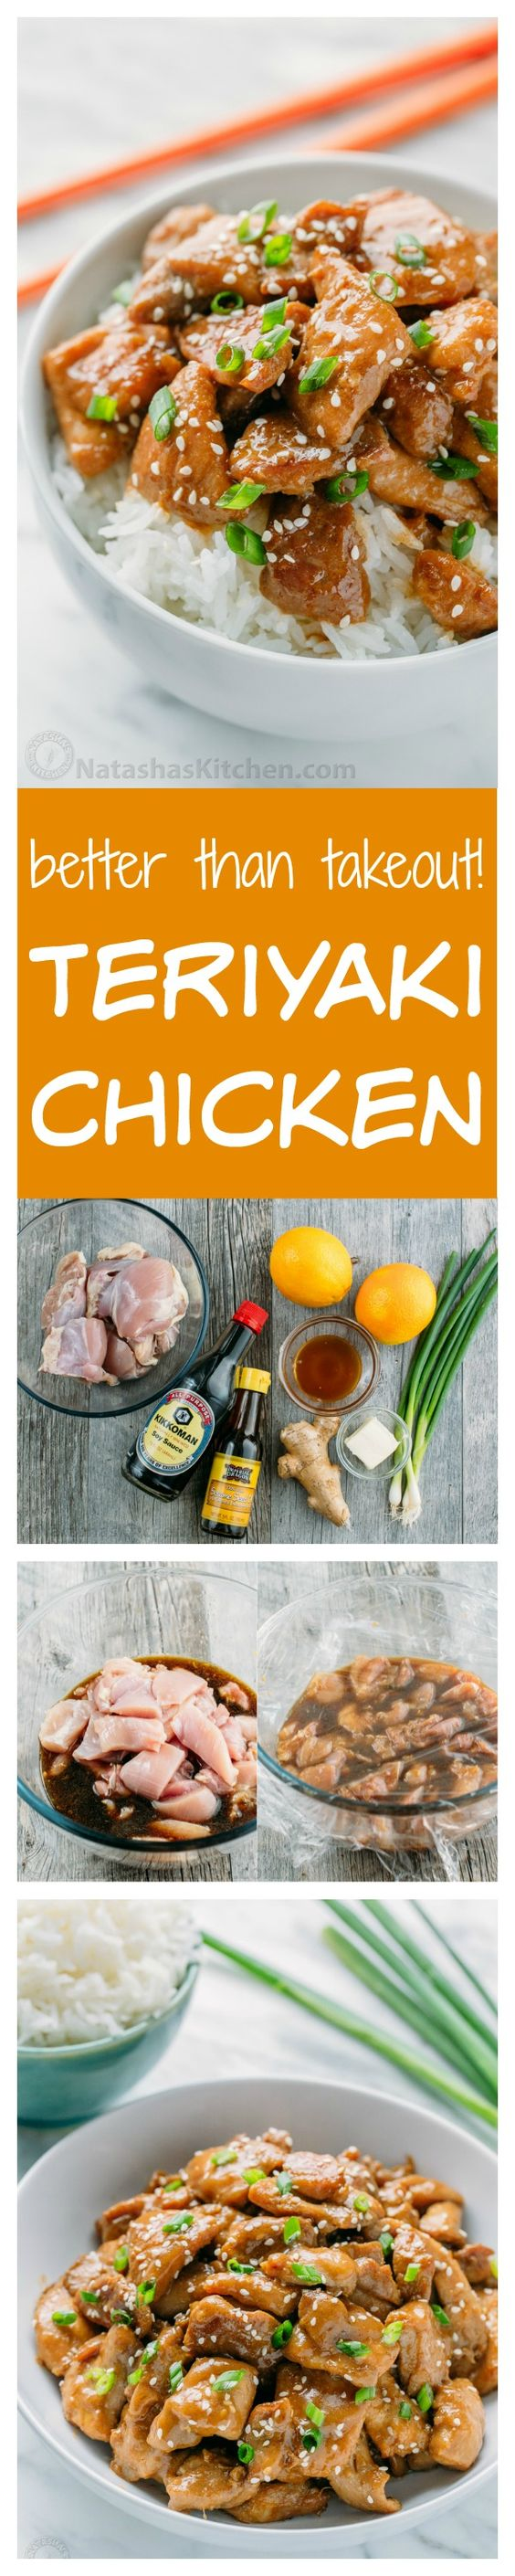 Easy Teriyaki Chicken Recipe that tastes better than takeout. This chicken teriyaki is a family favorite! Simple easy dinner idea. We served it over buttery white rice with broccoli. Yum!